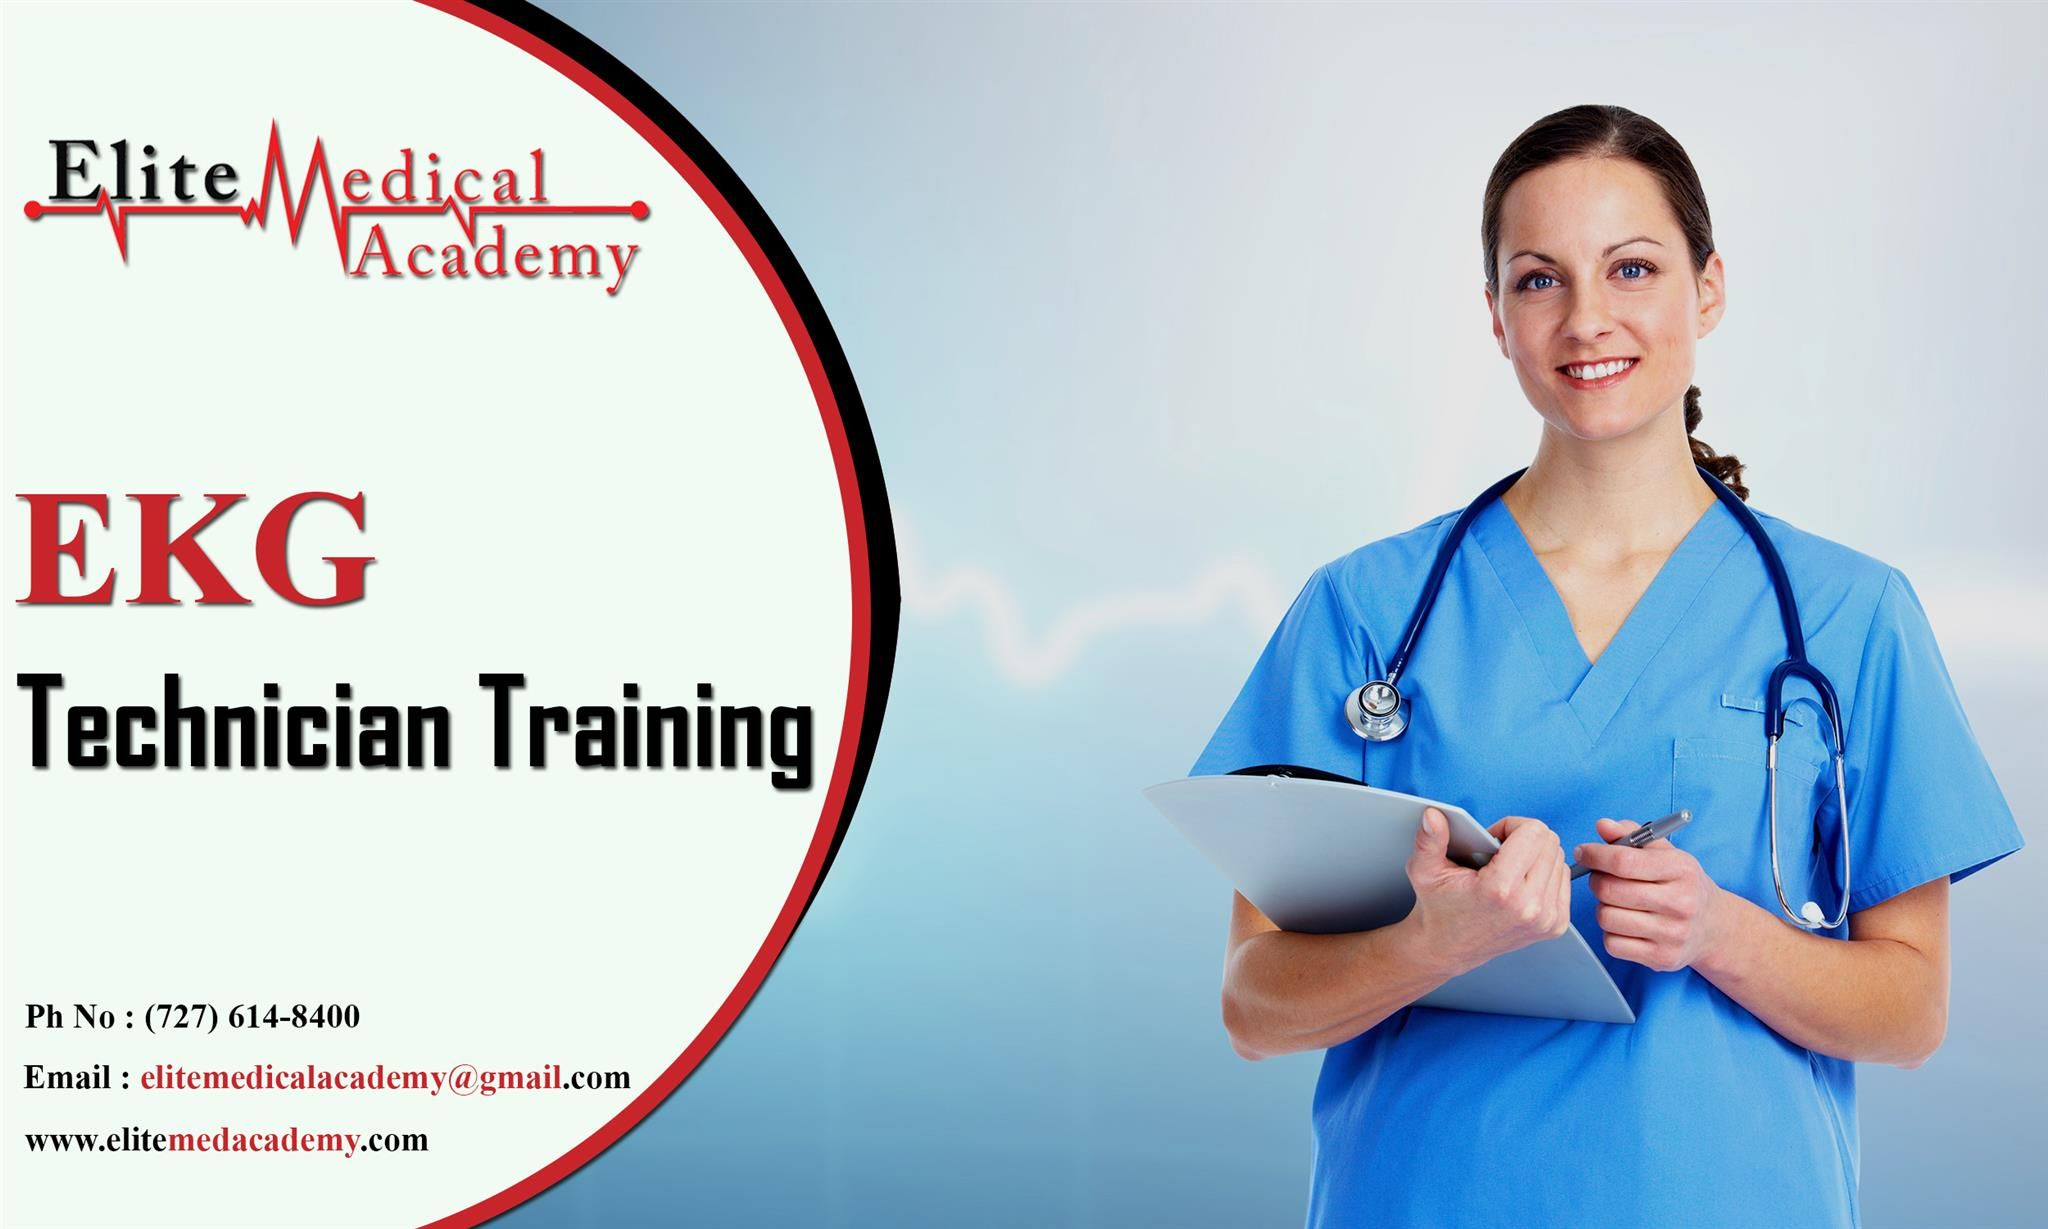 Do you want to take EKG Technician Training at a good